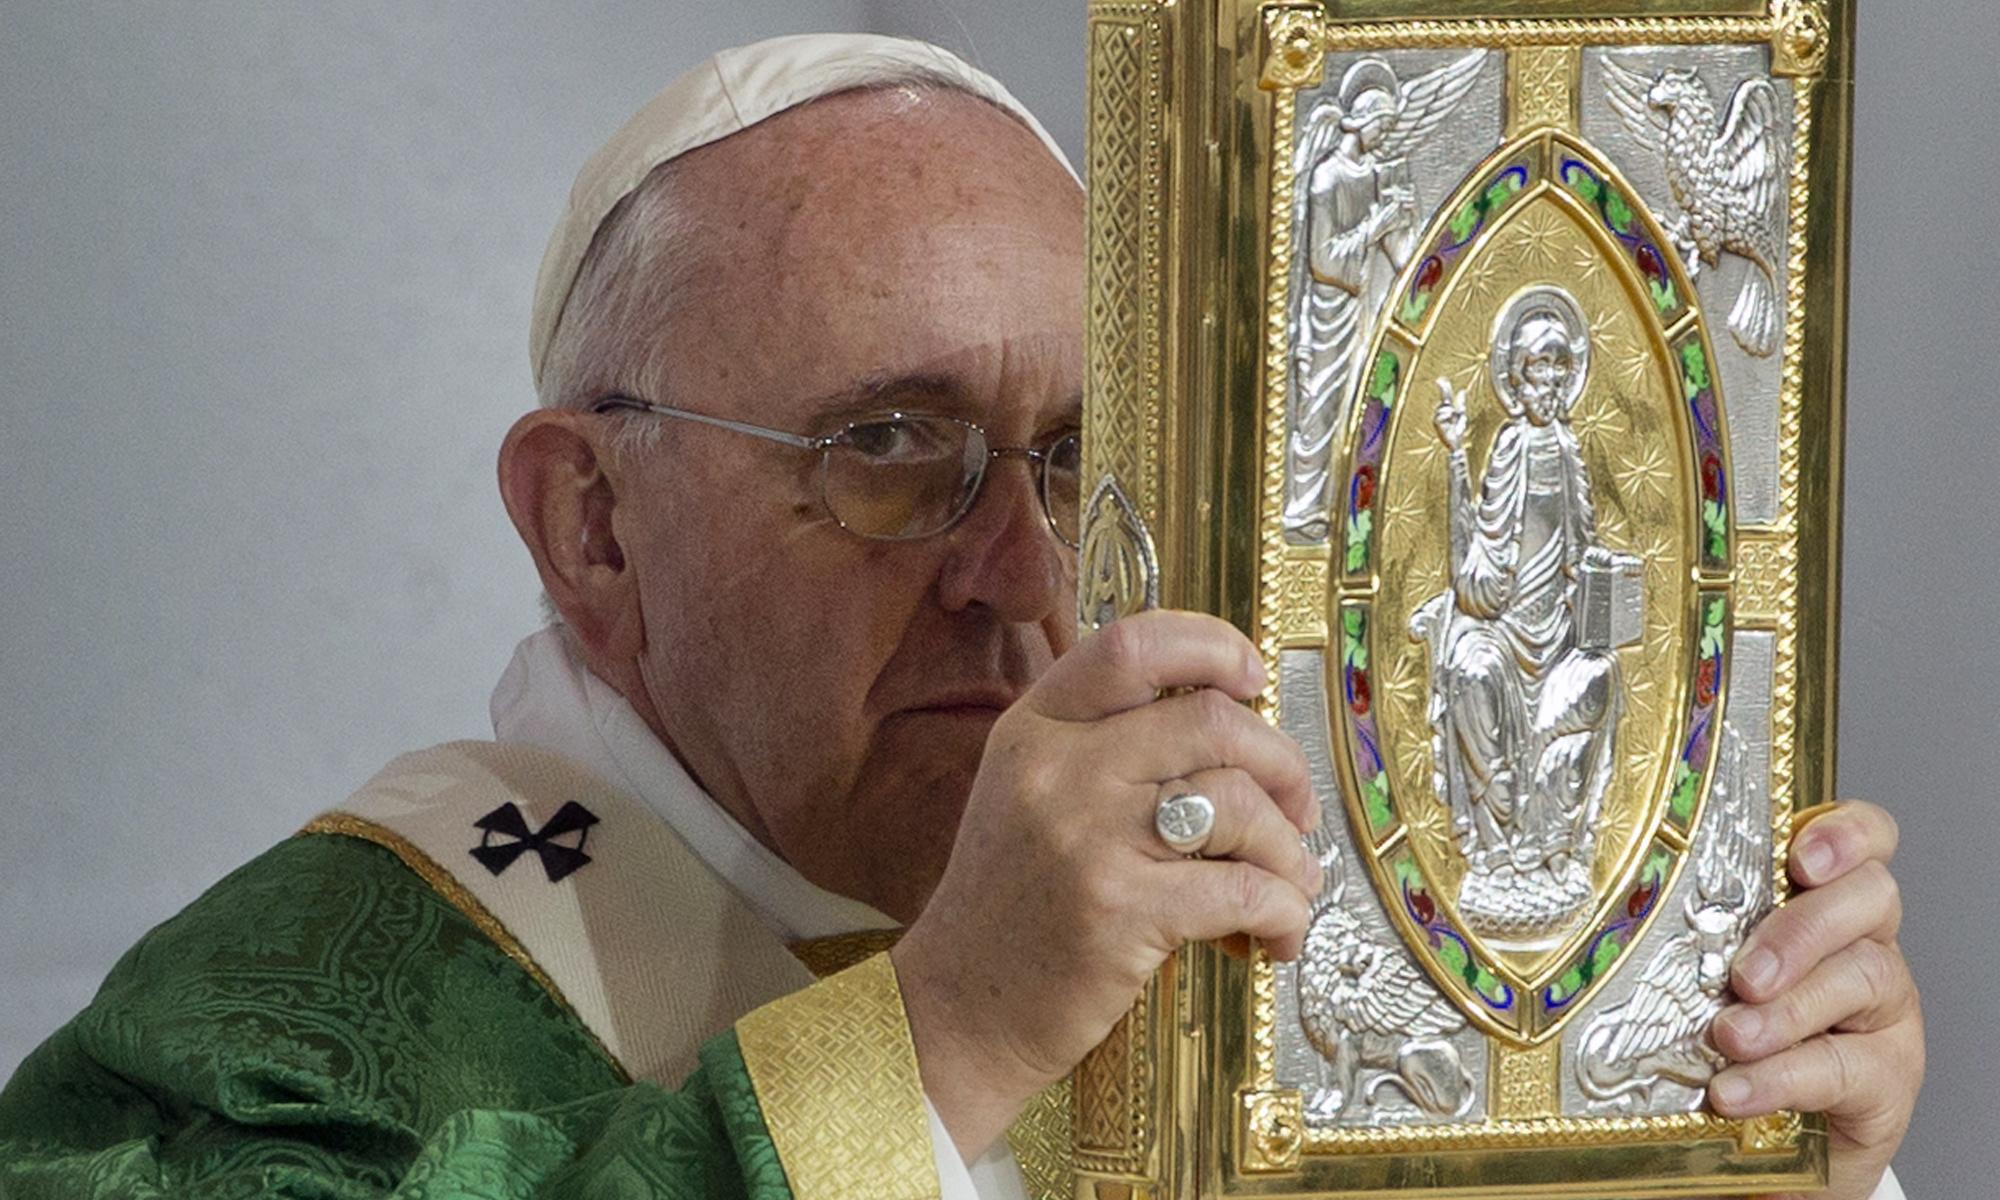 US confidence in Pope Francis plummets amid sexual abuse scandal